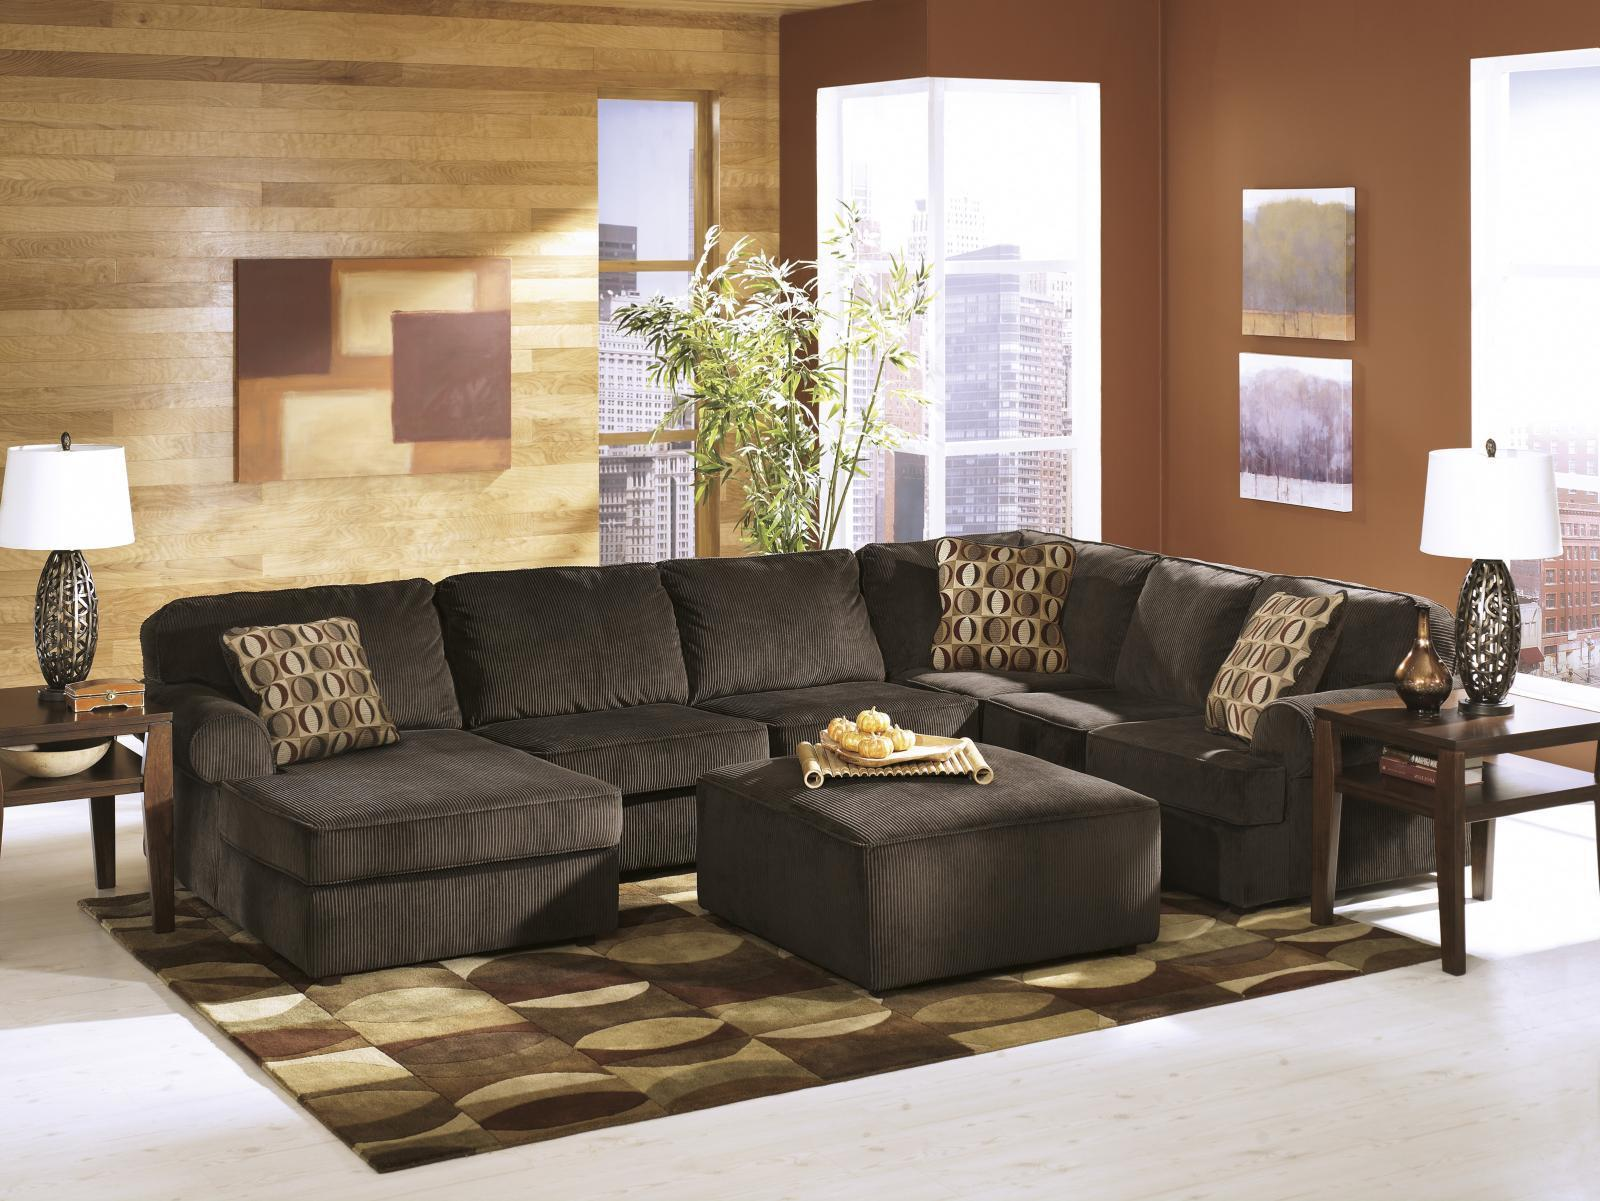 Ashley Vista Living Room Sectional 4pcs in Chocolate Right Facing Contemporary